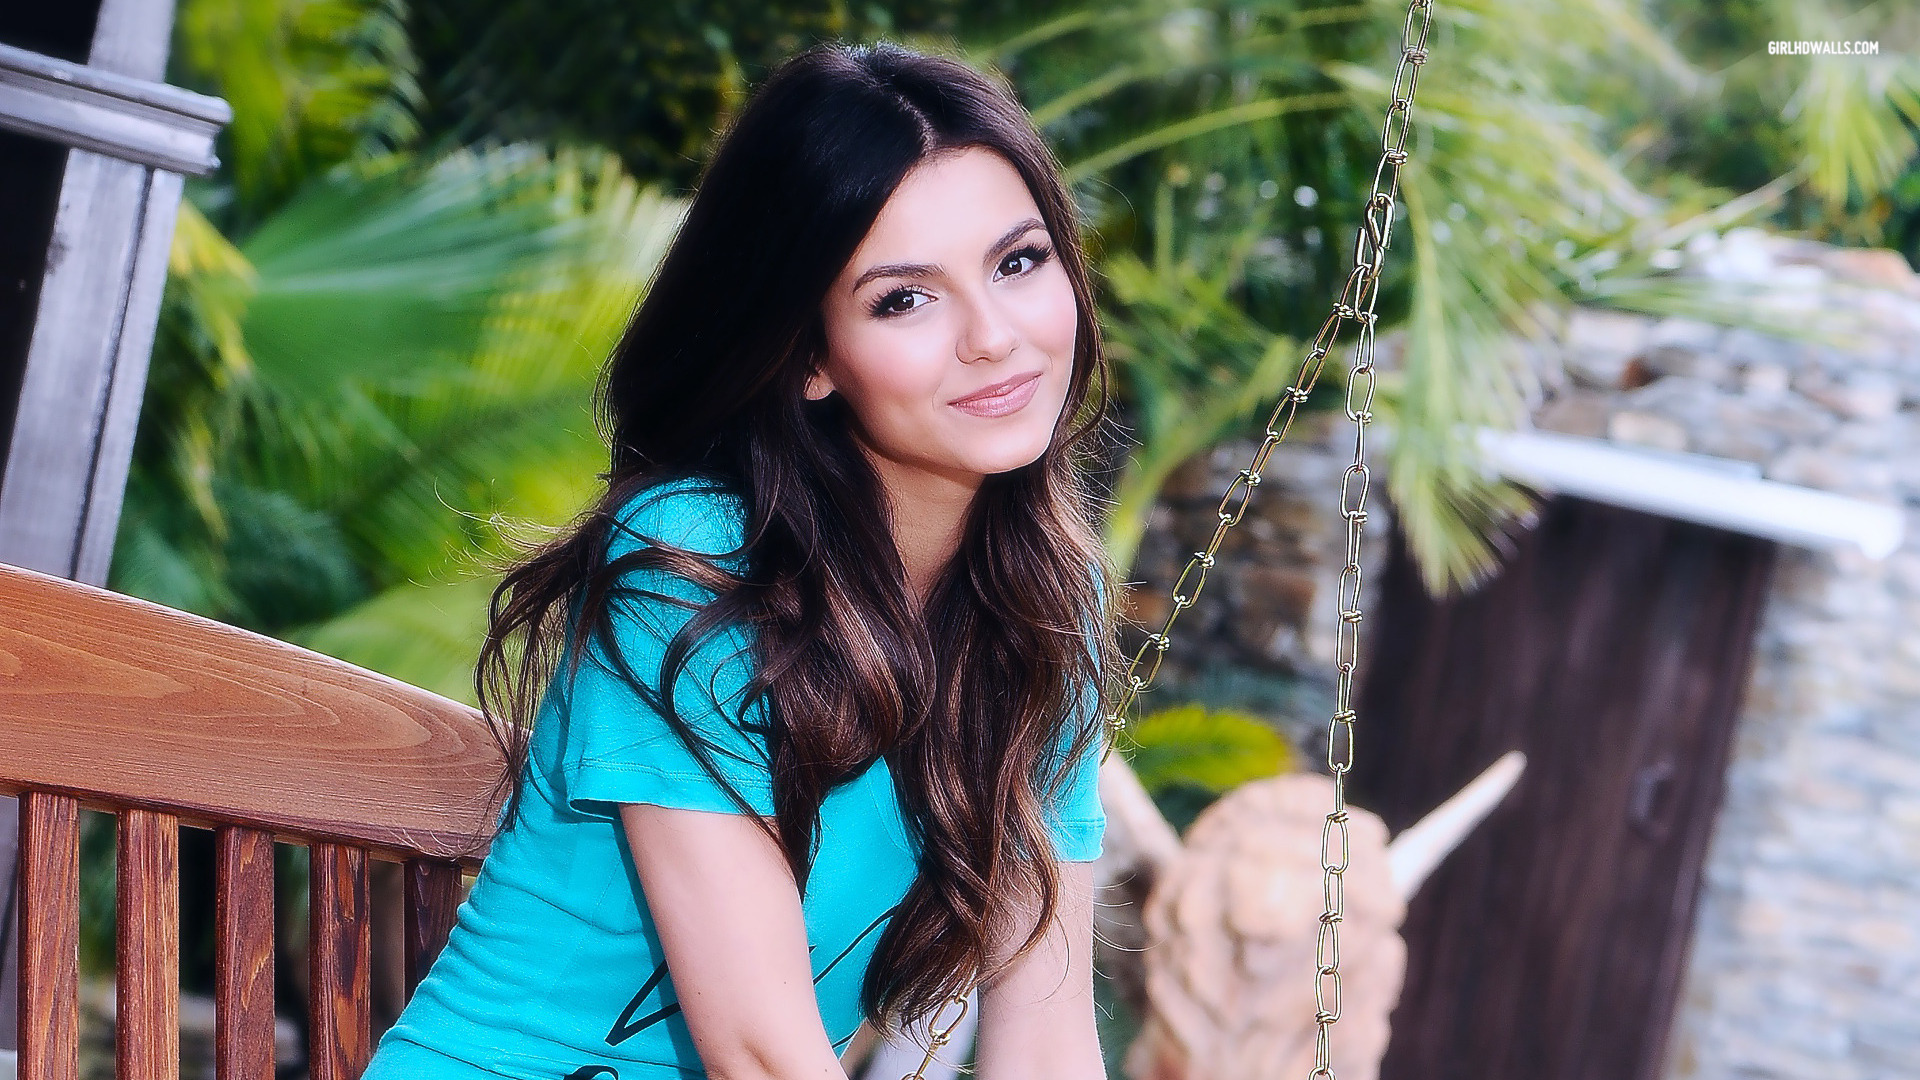 Victoria Falls Wallpapers High Resolution Download Victoria Justice Wallpapers Gallery